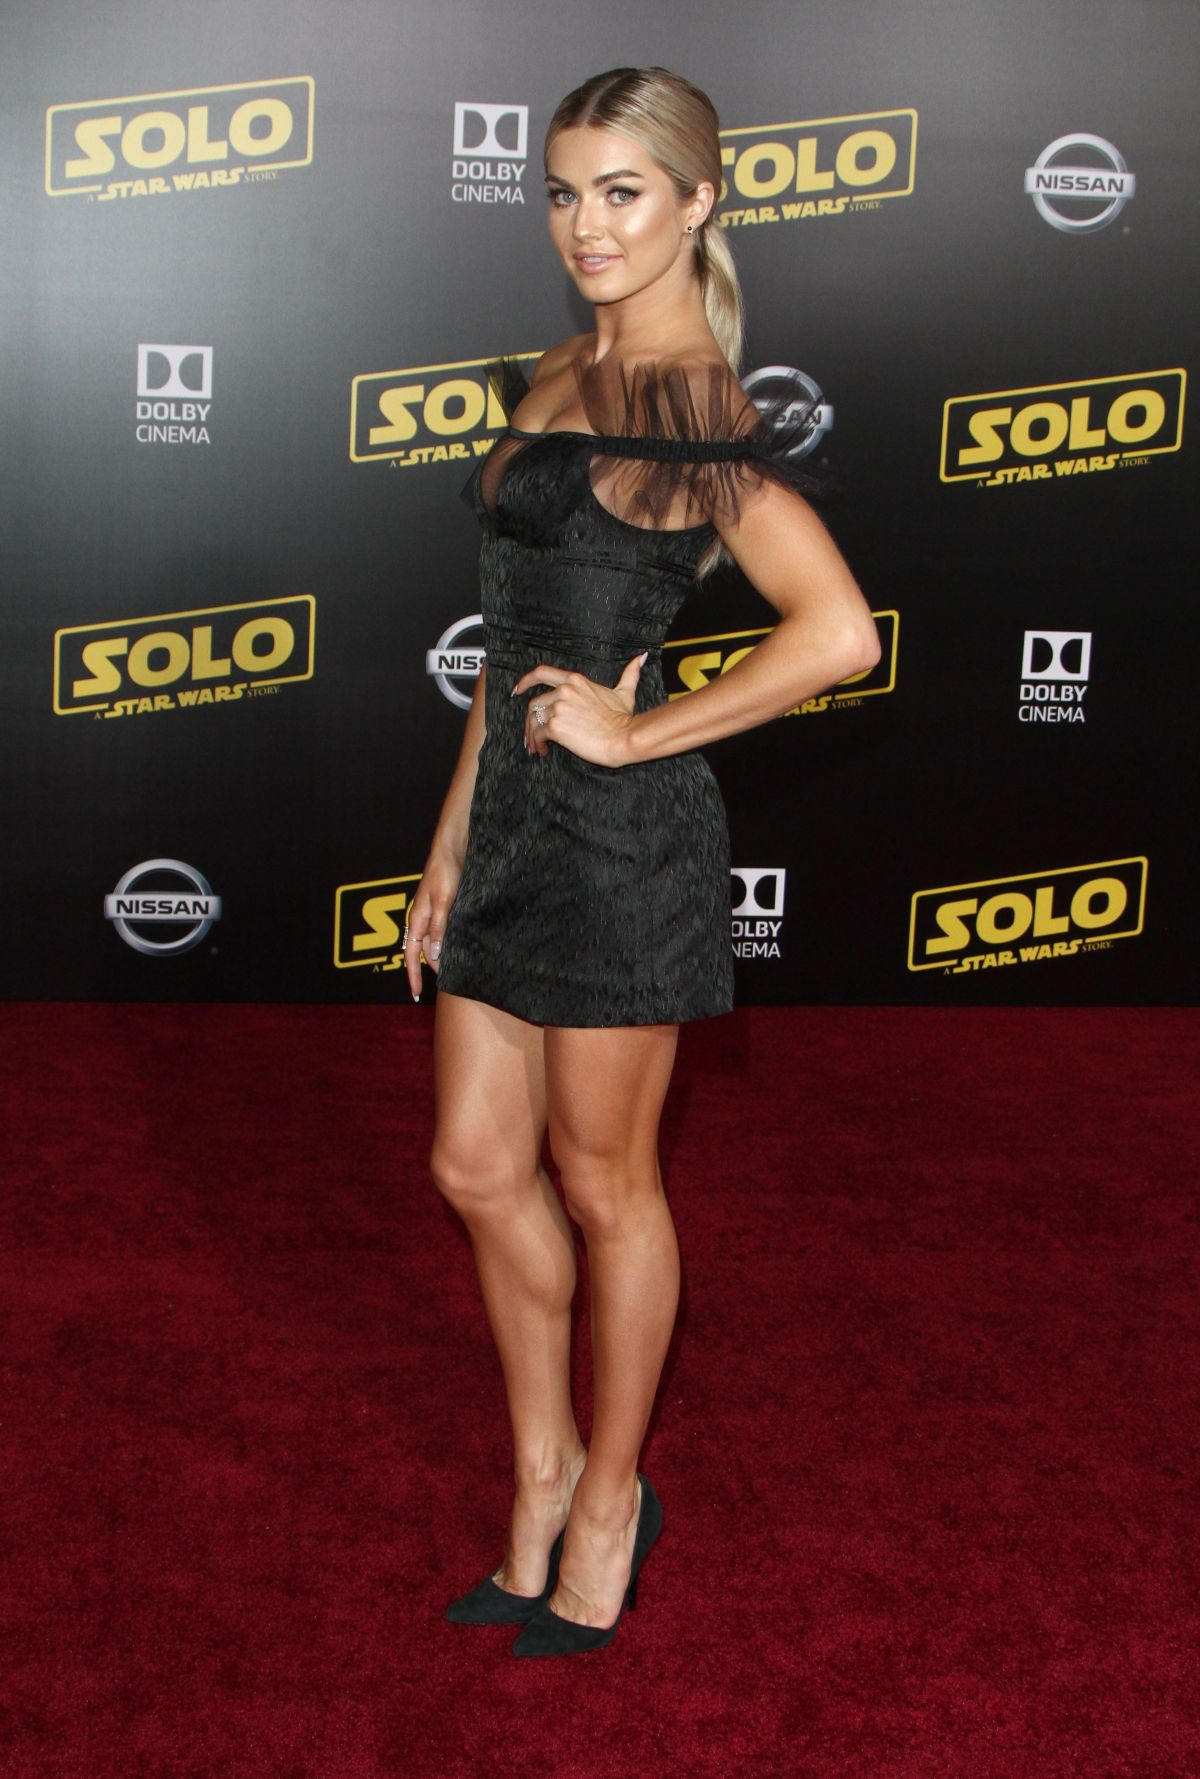 70752367_lindsay-arnold-solo-a-star-wars-story-hollywood-premiere-in-la-10-05-2018.jpg